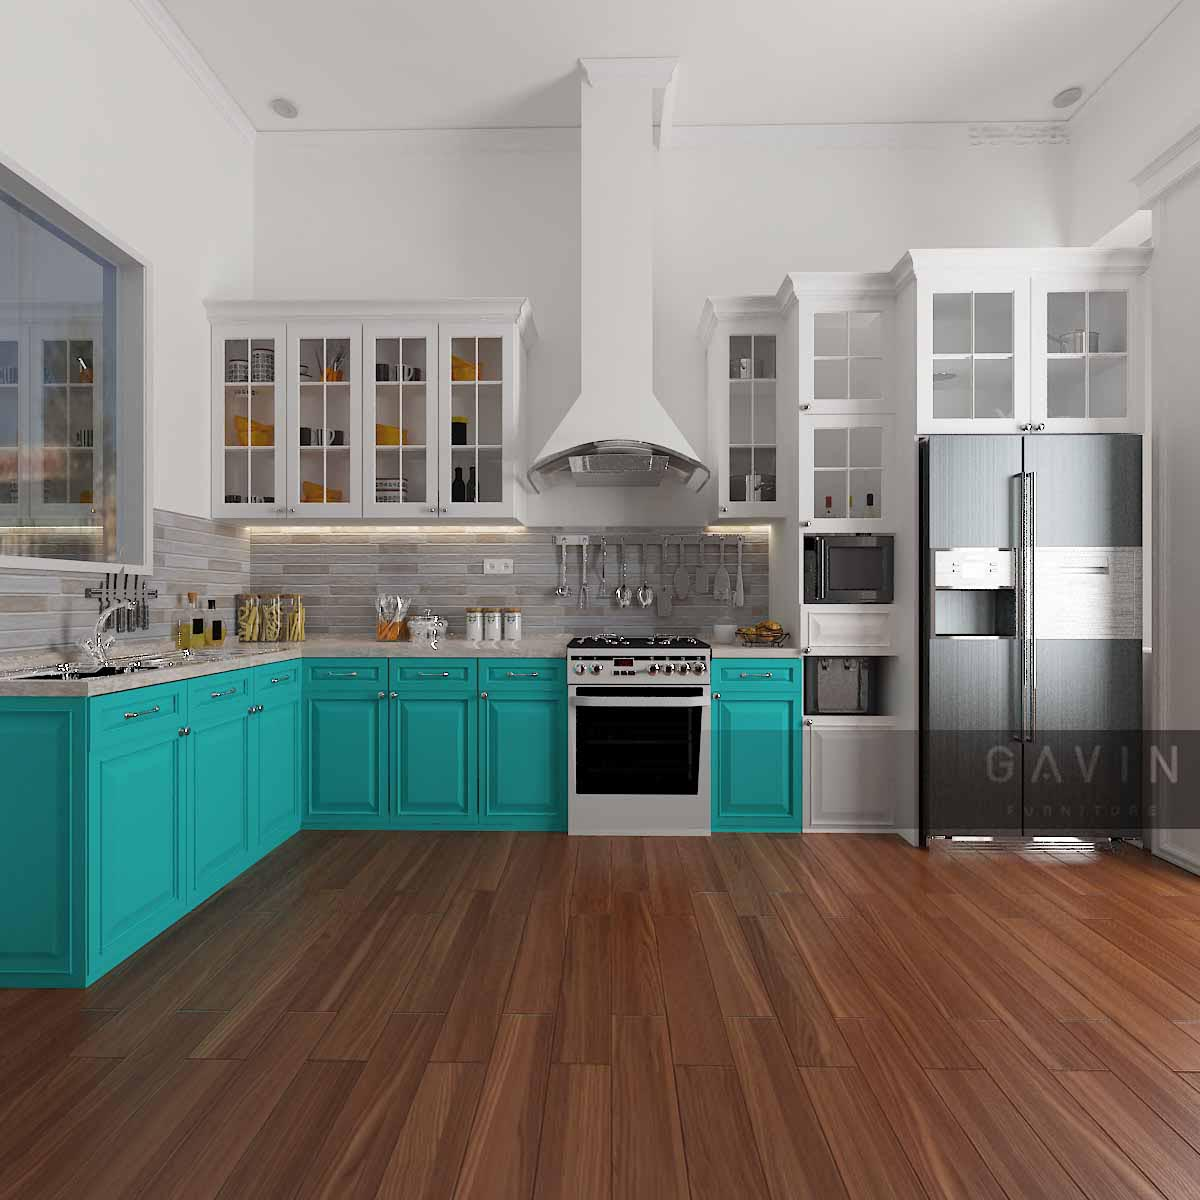 Desain-3-dimensi-kitchen-set-finishing-duco